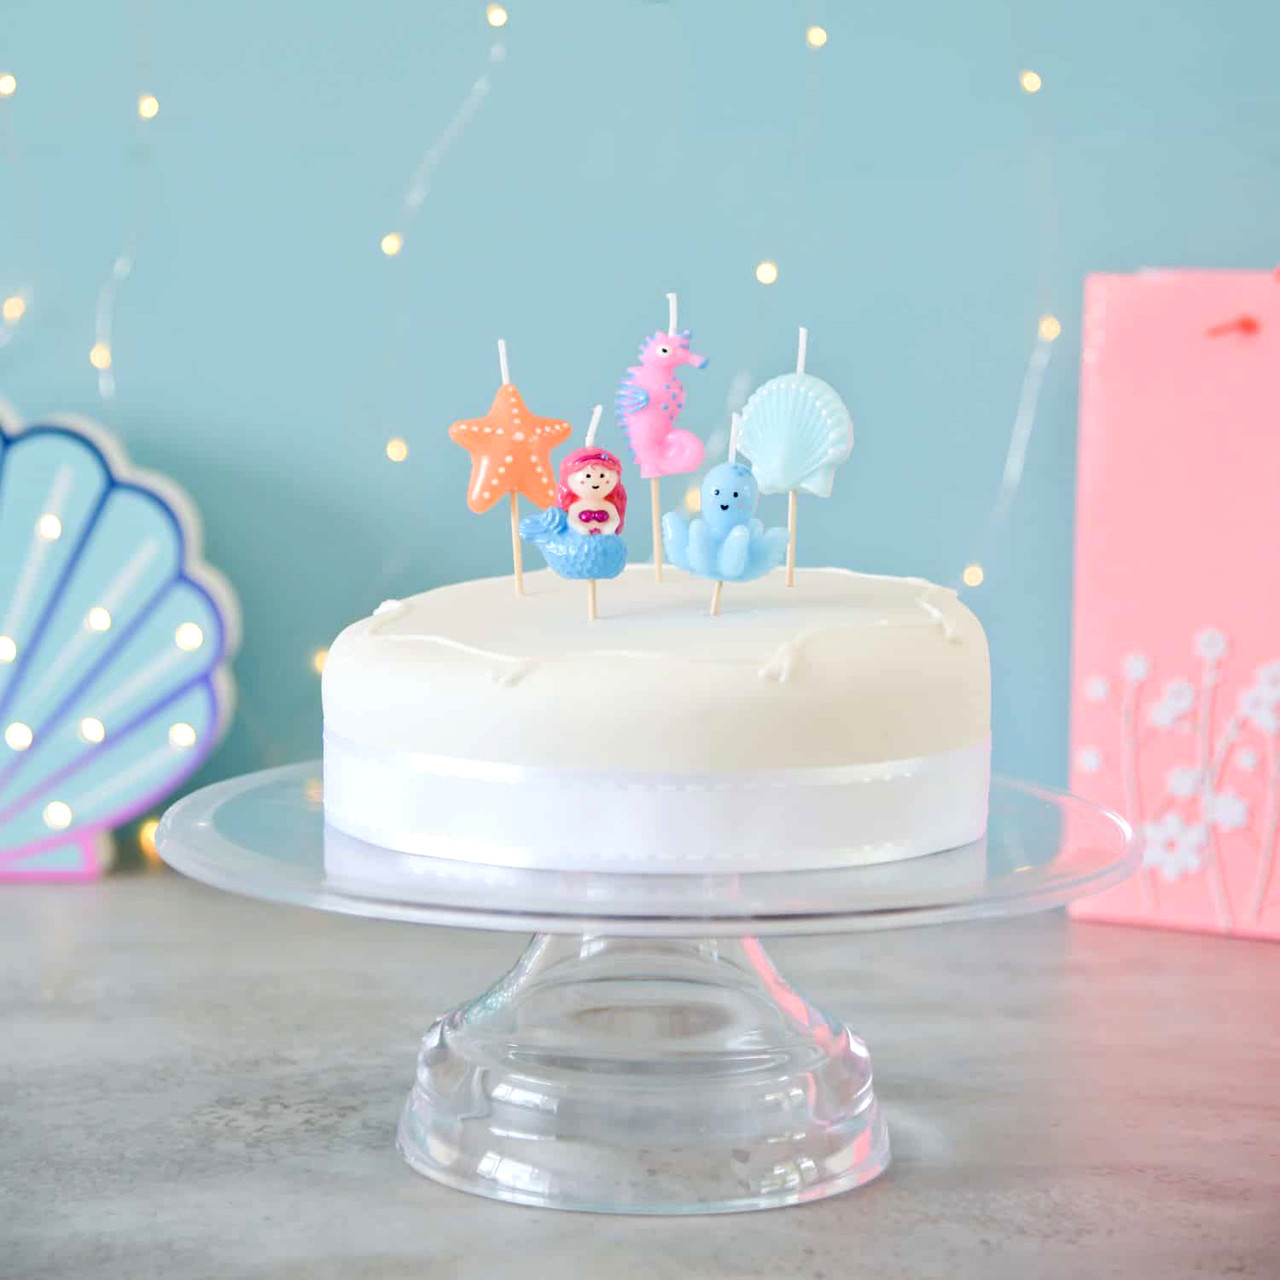 Surprising Under The Sea Themed Birthday Party Cake Candles Personalised Birthday Cards Paralily Jamesorg